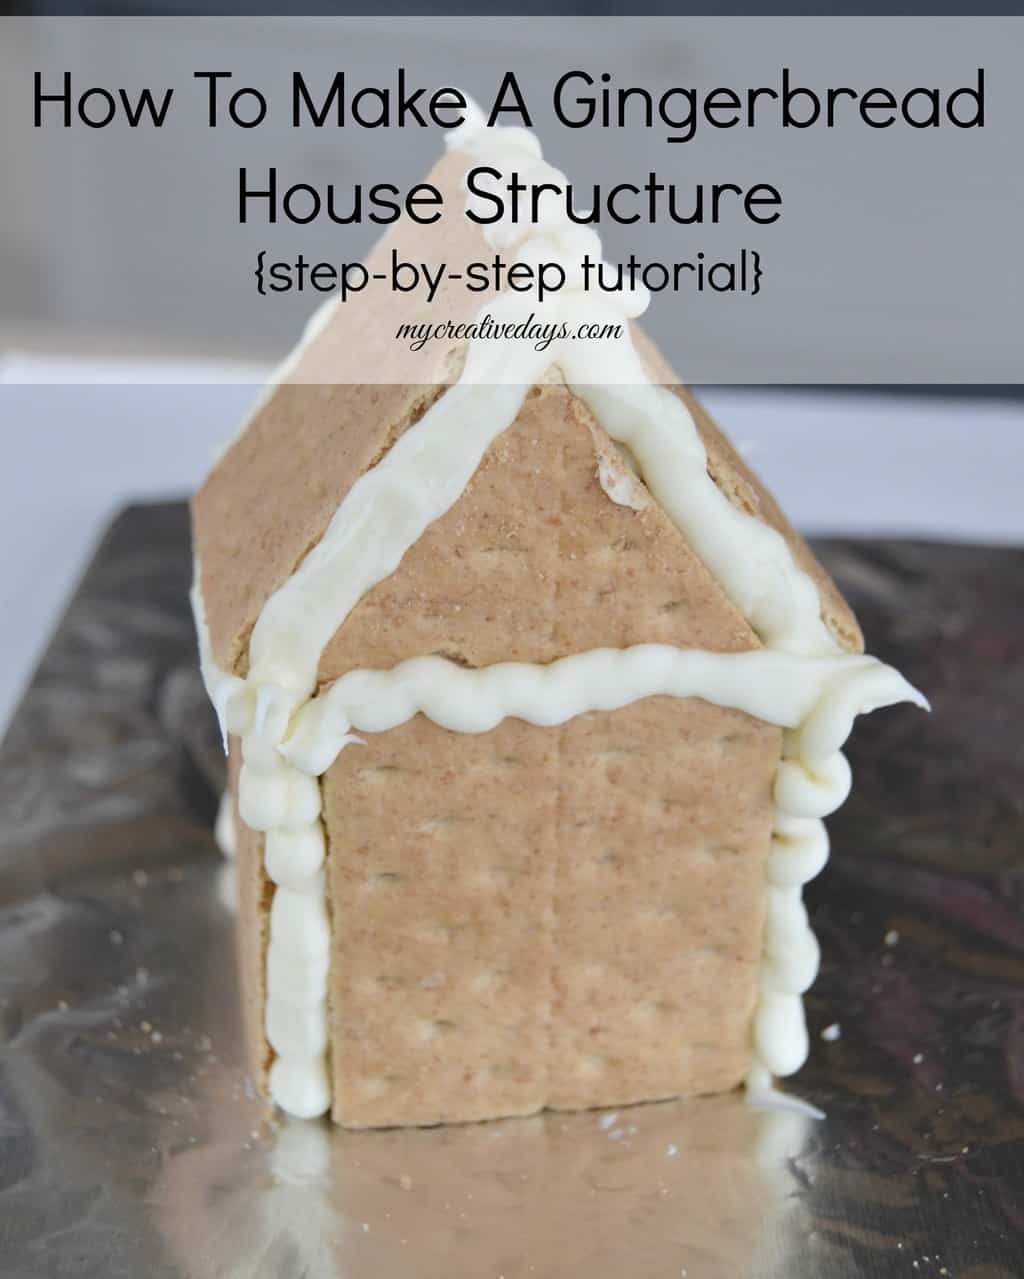 How To Make A Gingerbread House Structure {step-by-step tutorial} mycreativedays.com